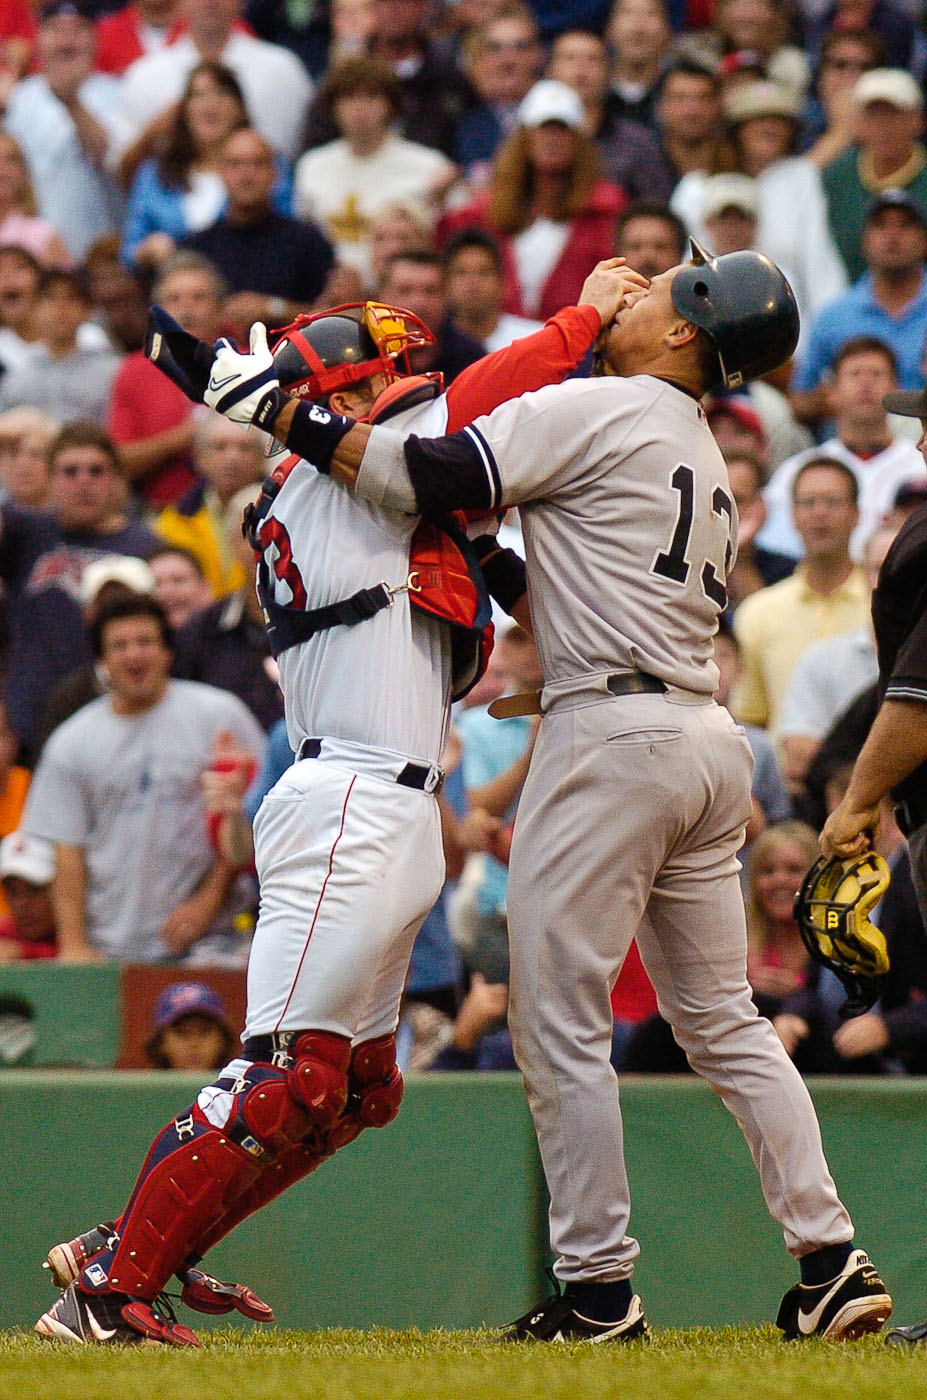 New York Yankees' Alex Rodriguez and Boston Red Sox catcher Jason Varitek fight during a game in Fenway Park on July 24, 2004 in Boston, Mass.